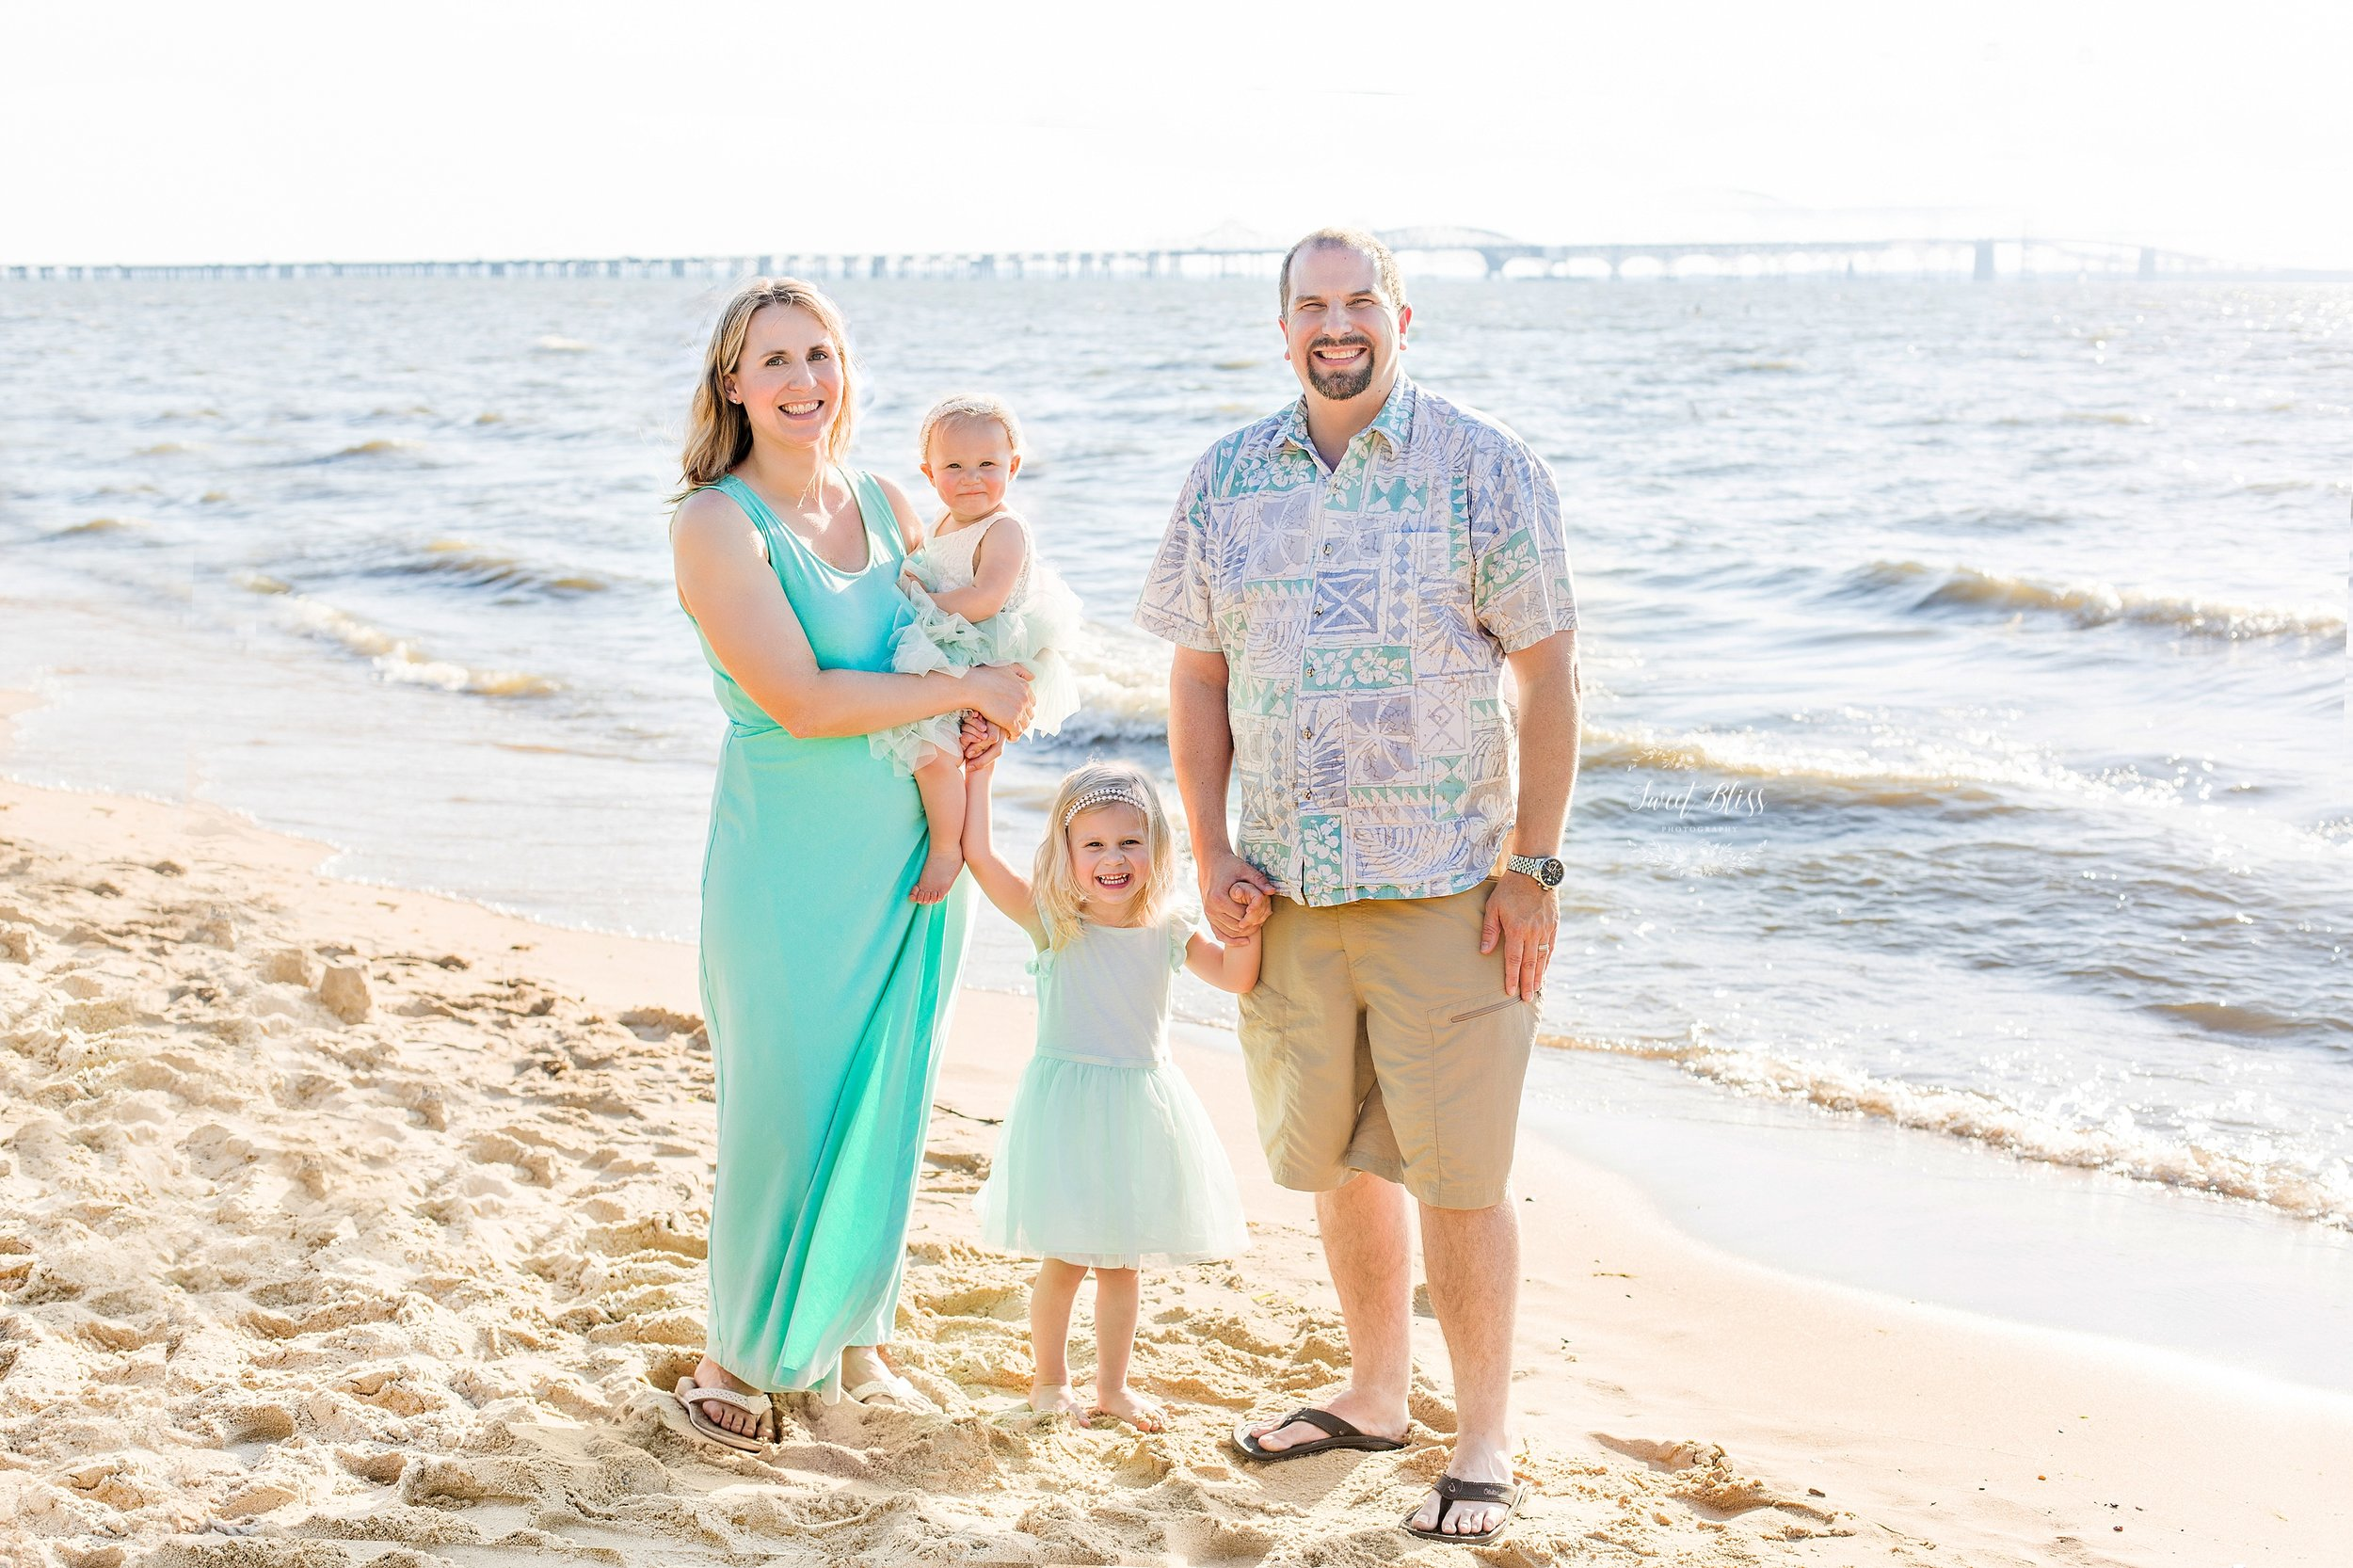 Marylandbabyphotographer_cakesmash_Beach-13.jpg